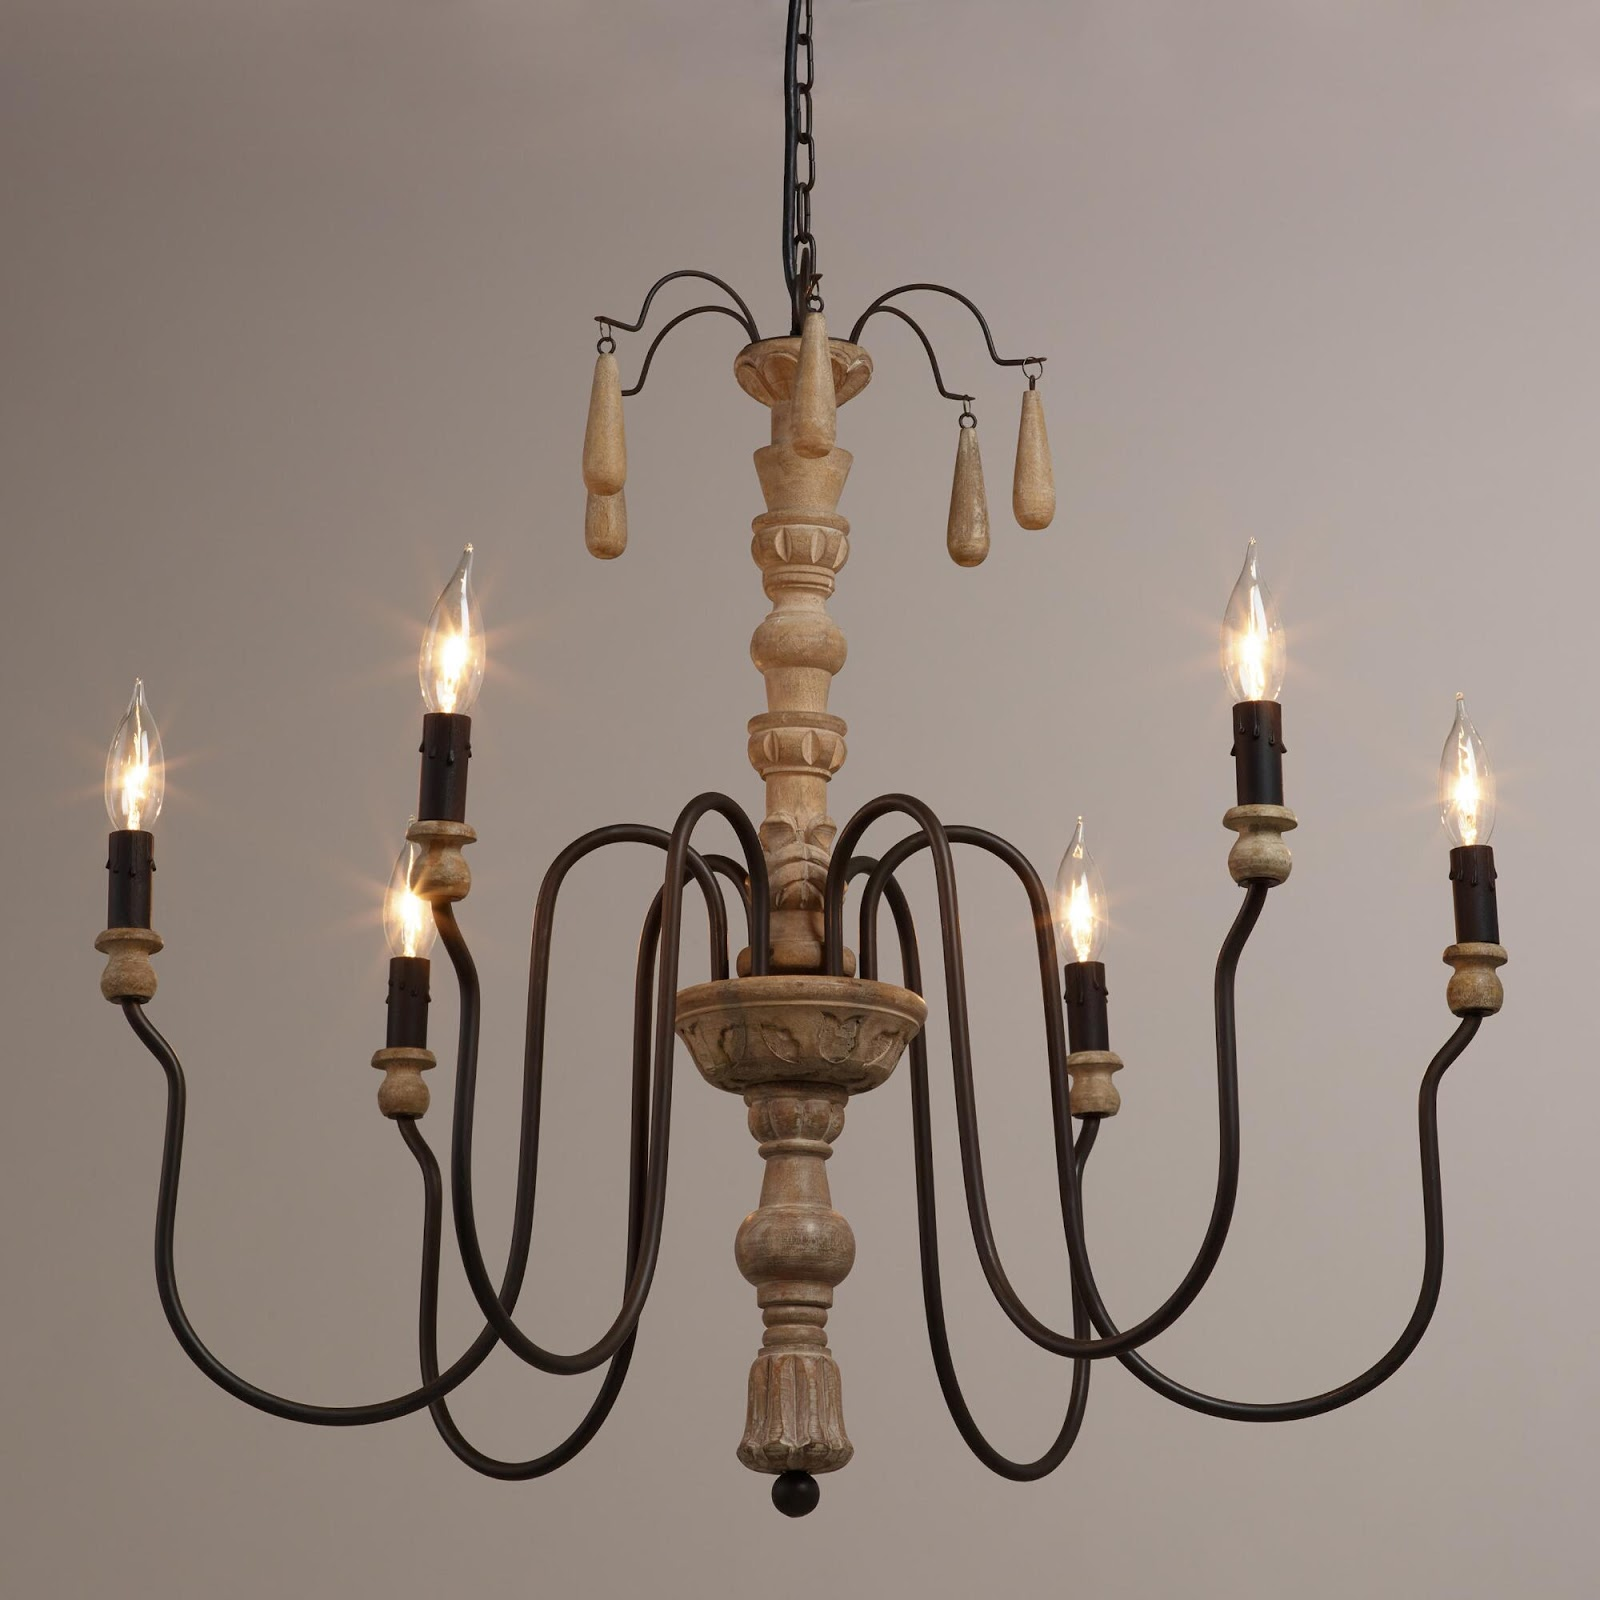 Easy DIY Joanna Gaines & Fixer Upper Chandelier